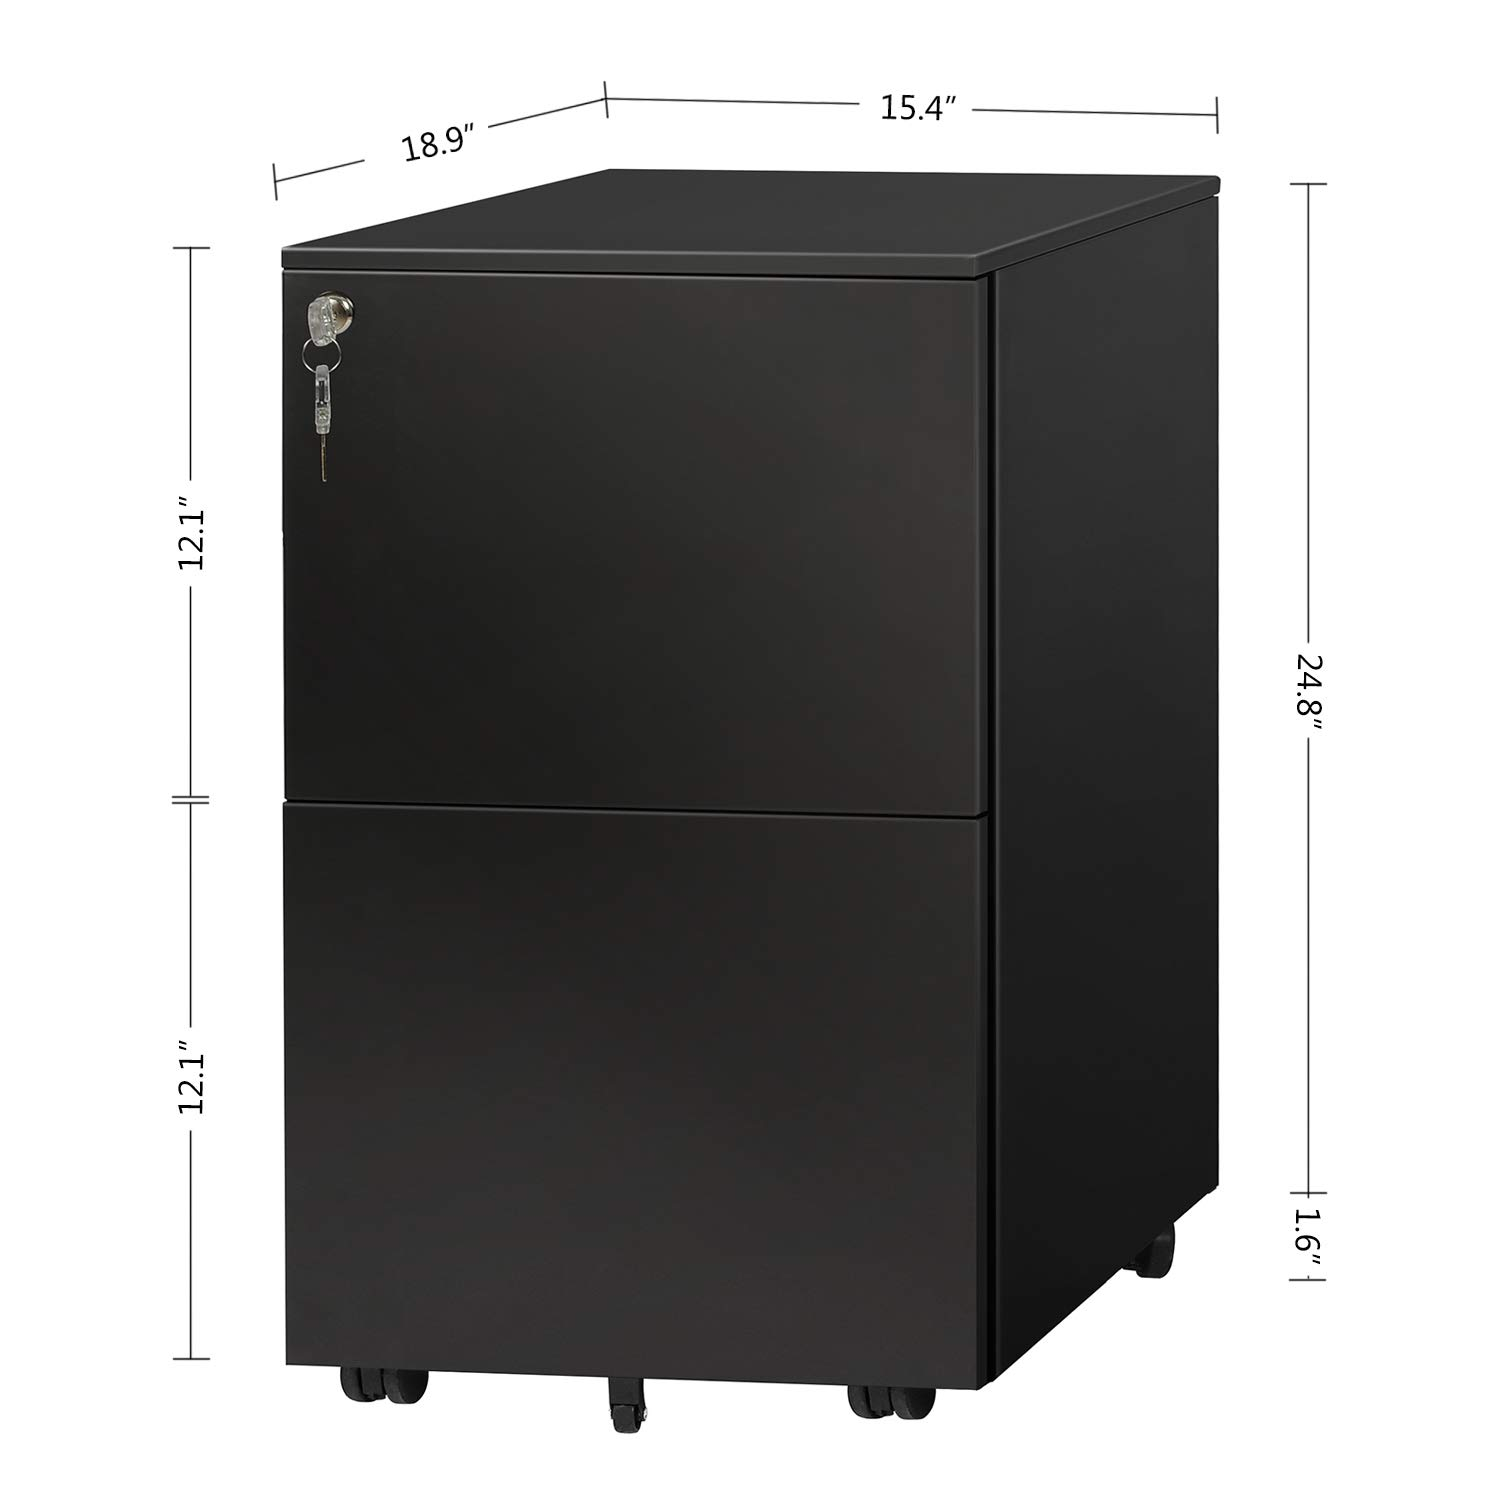 DEVAISE Locking File Cabinet, 2 Drawer Rolling Metal Filing Cabinet, Fully Assembled Except Wheels, Black by DEVAISE (Image #6)